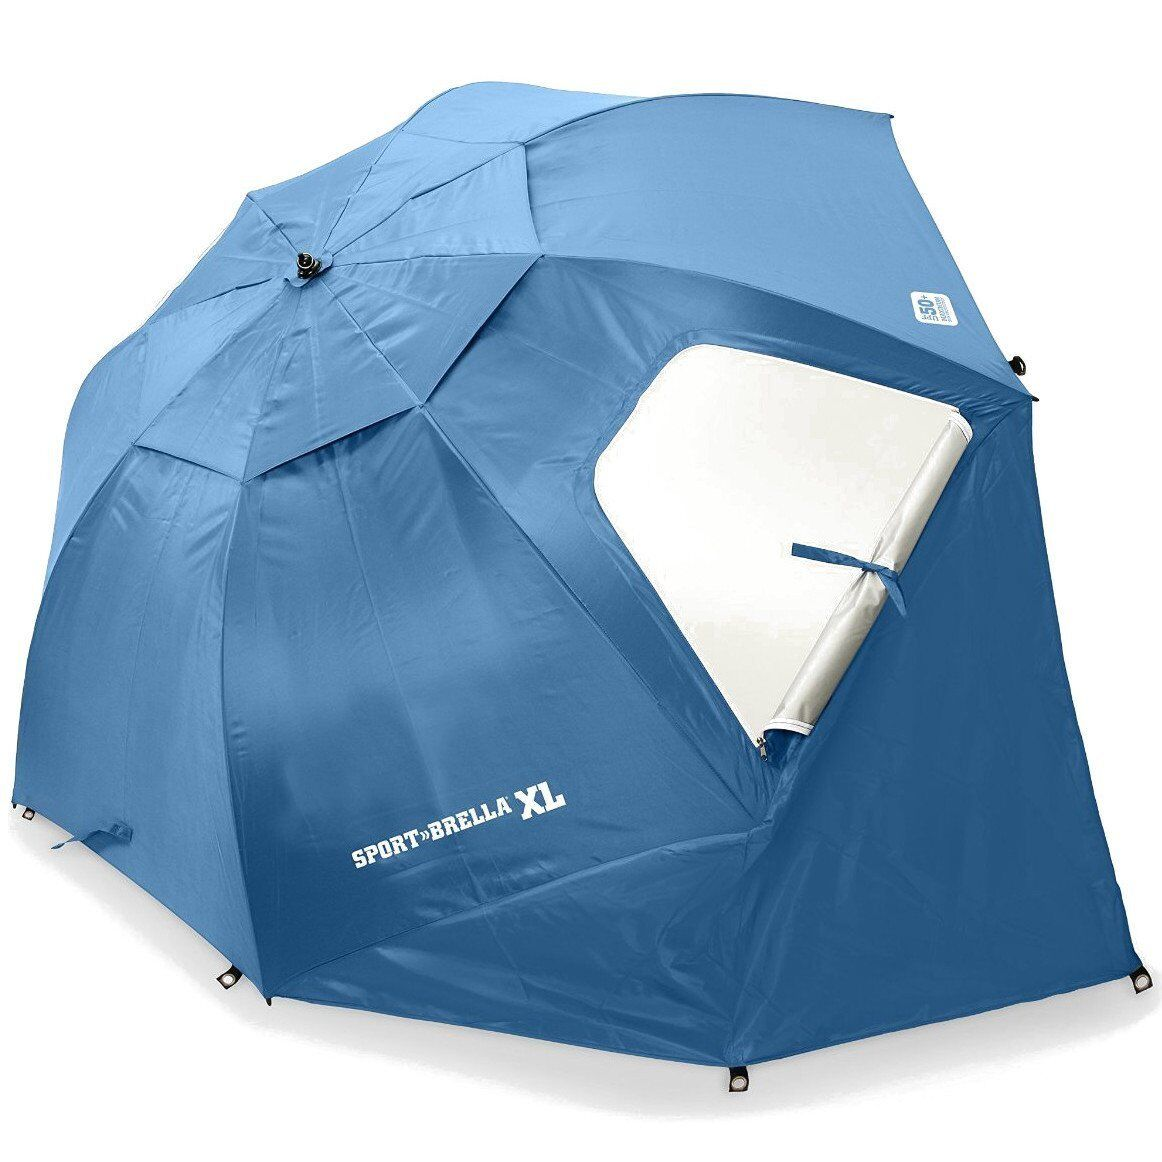 Outdoor Beach Tilt Sunshade Patio Umbrella Easy Fold Carry Camping Canopy NEW